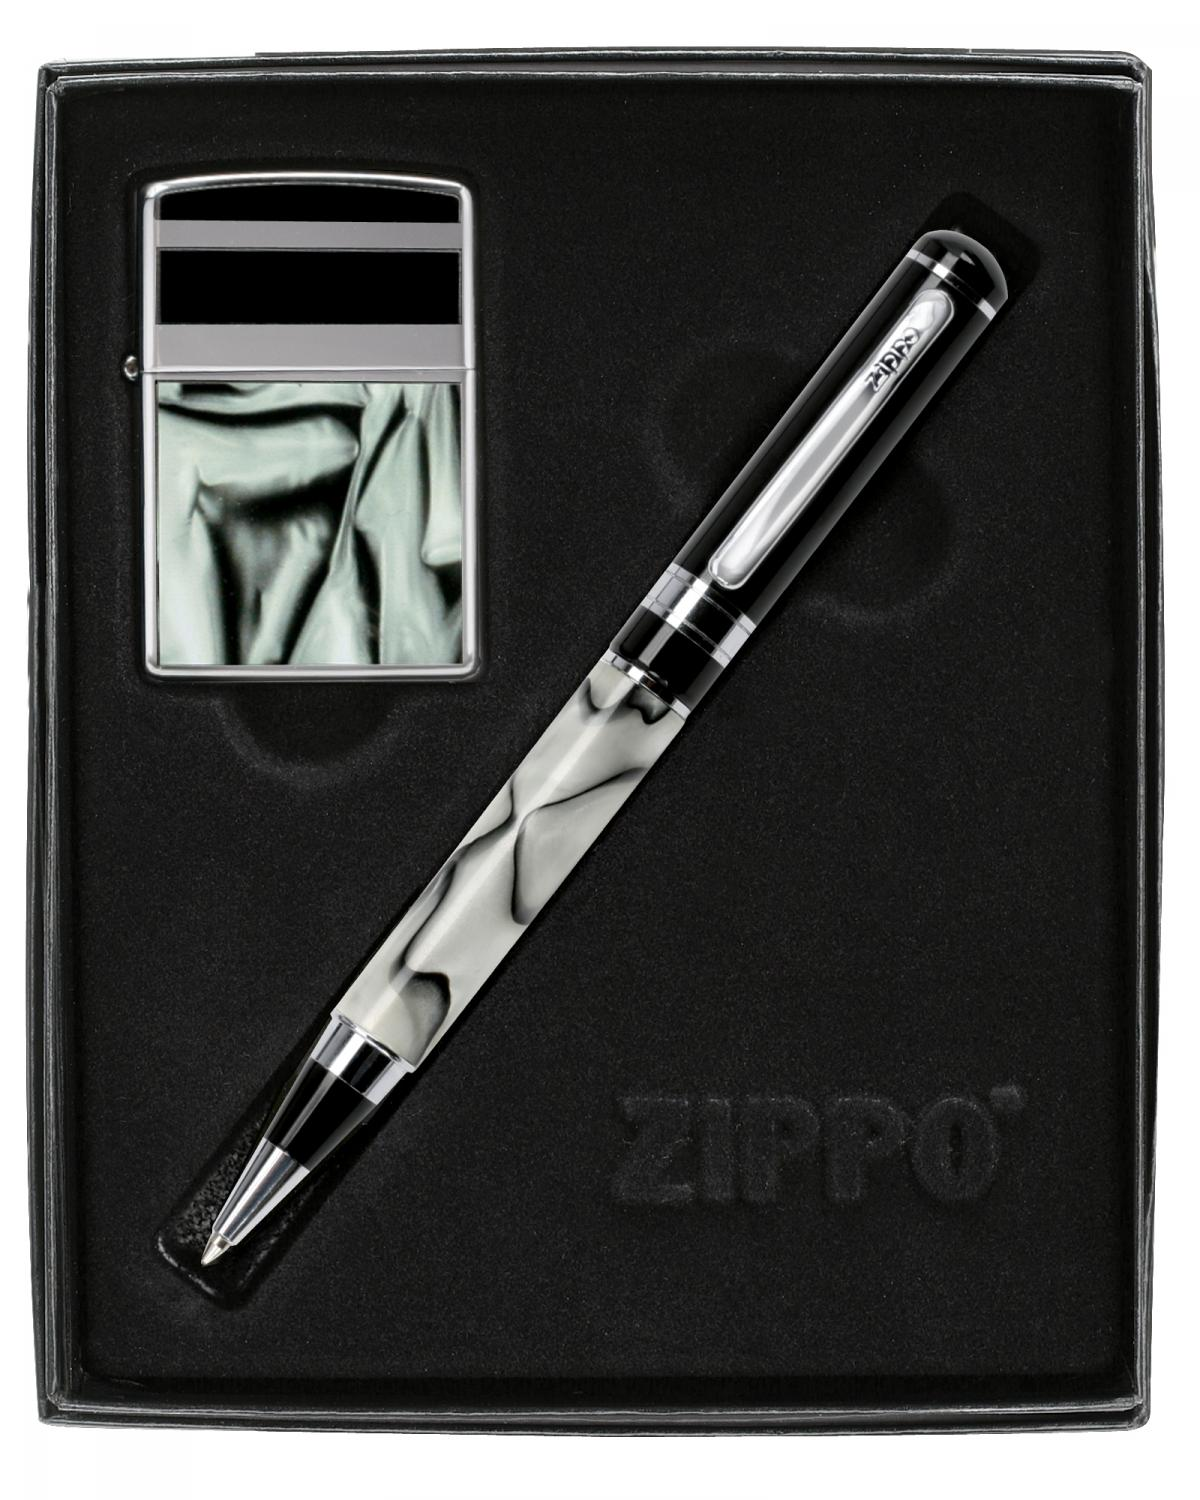 Zippo Gift Set Black Marbel Pattern High Polish Chrome / Pen